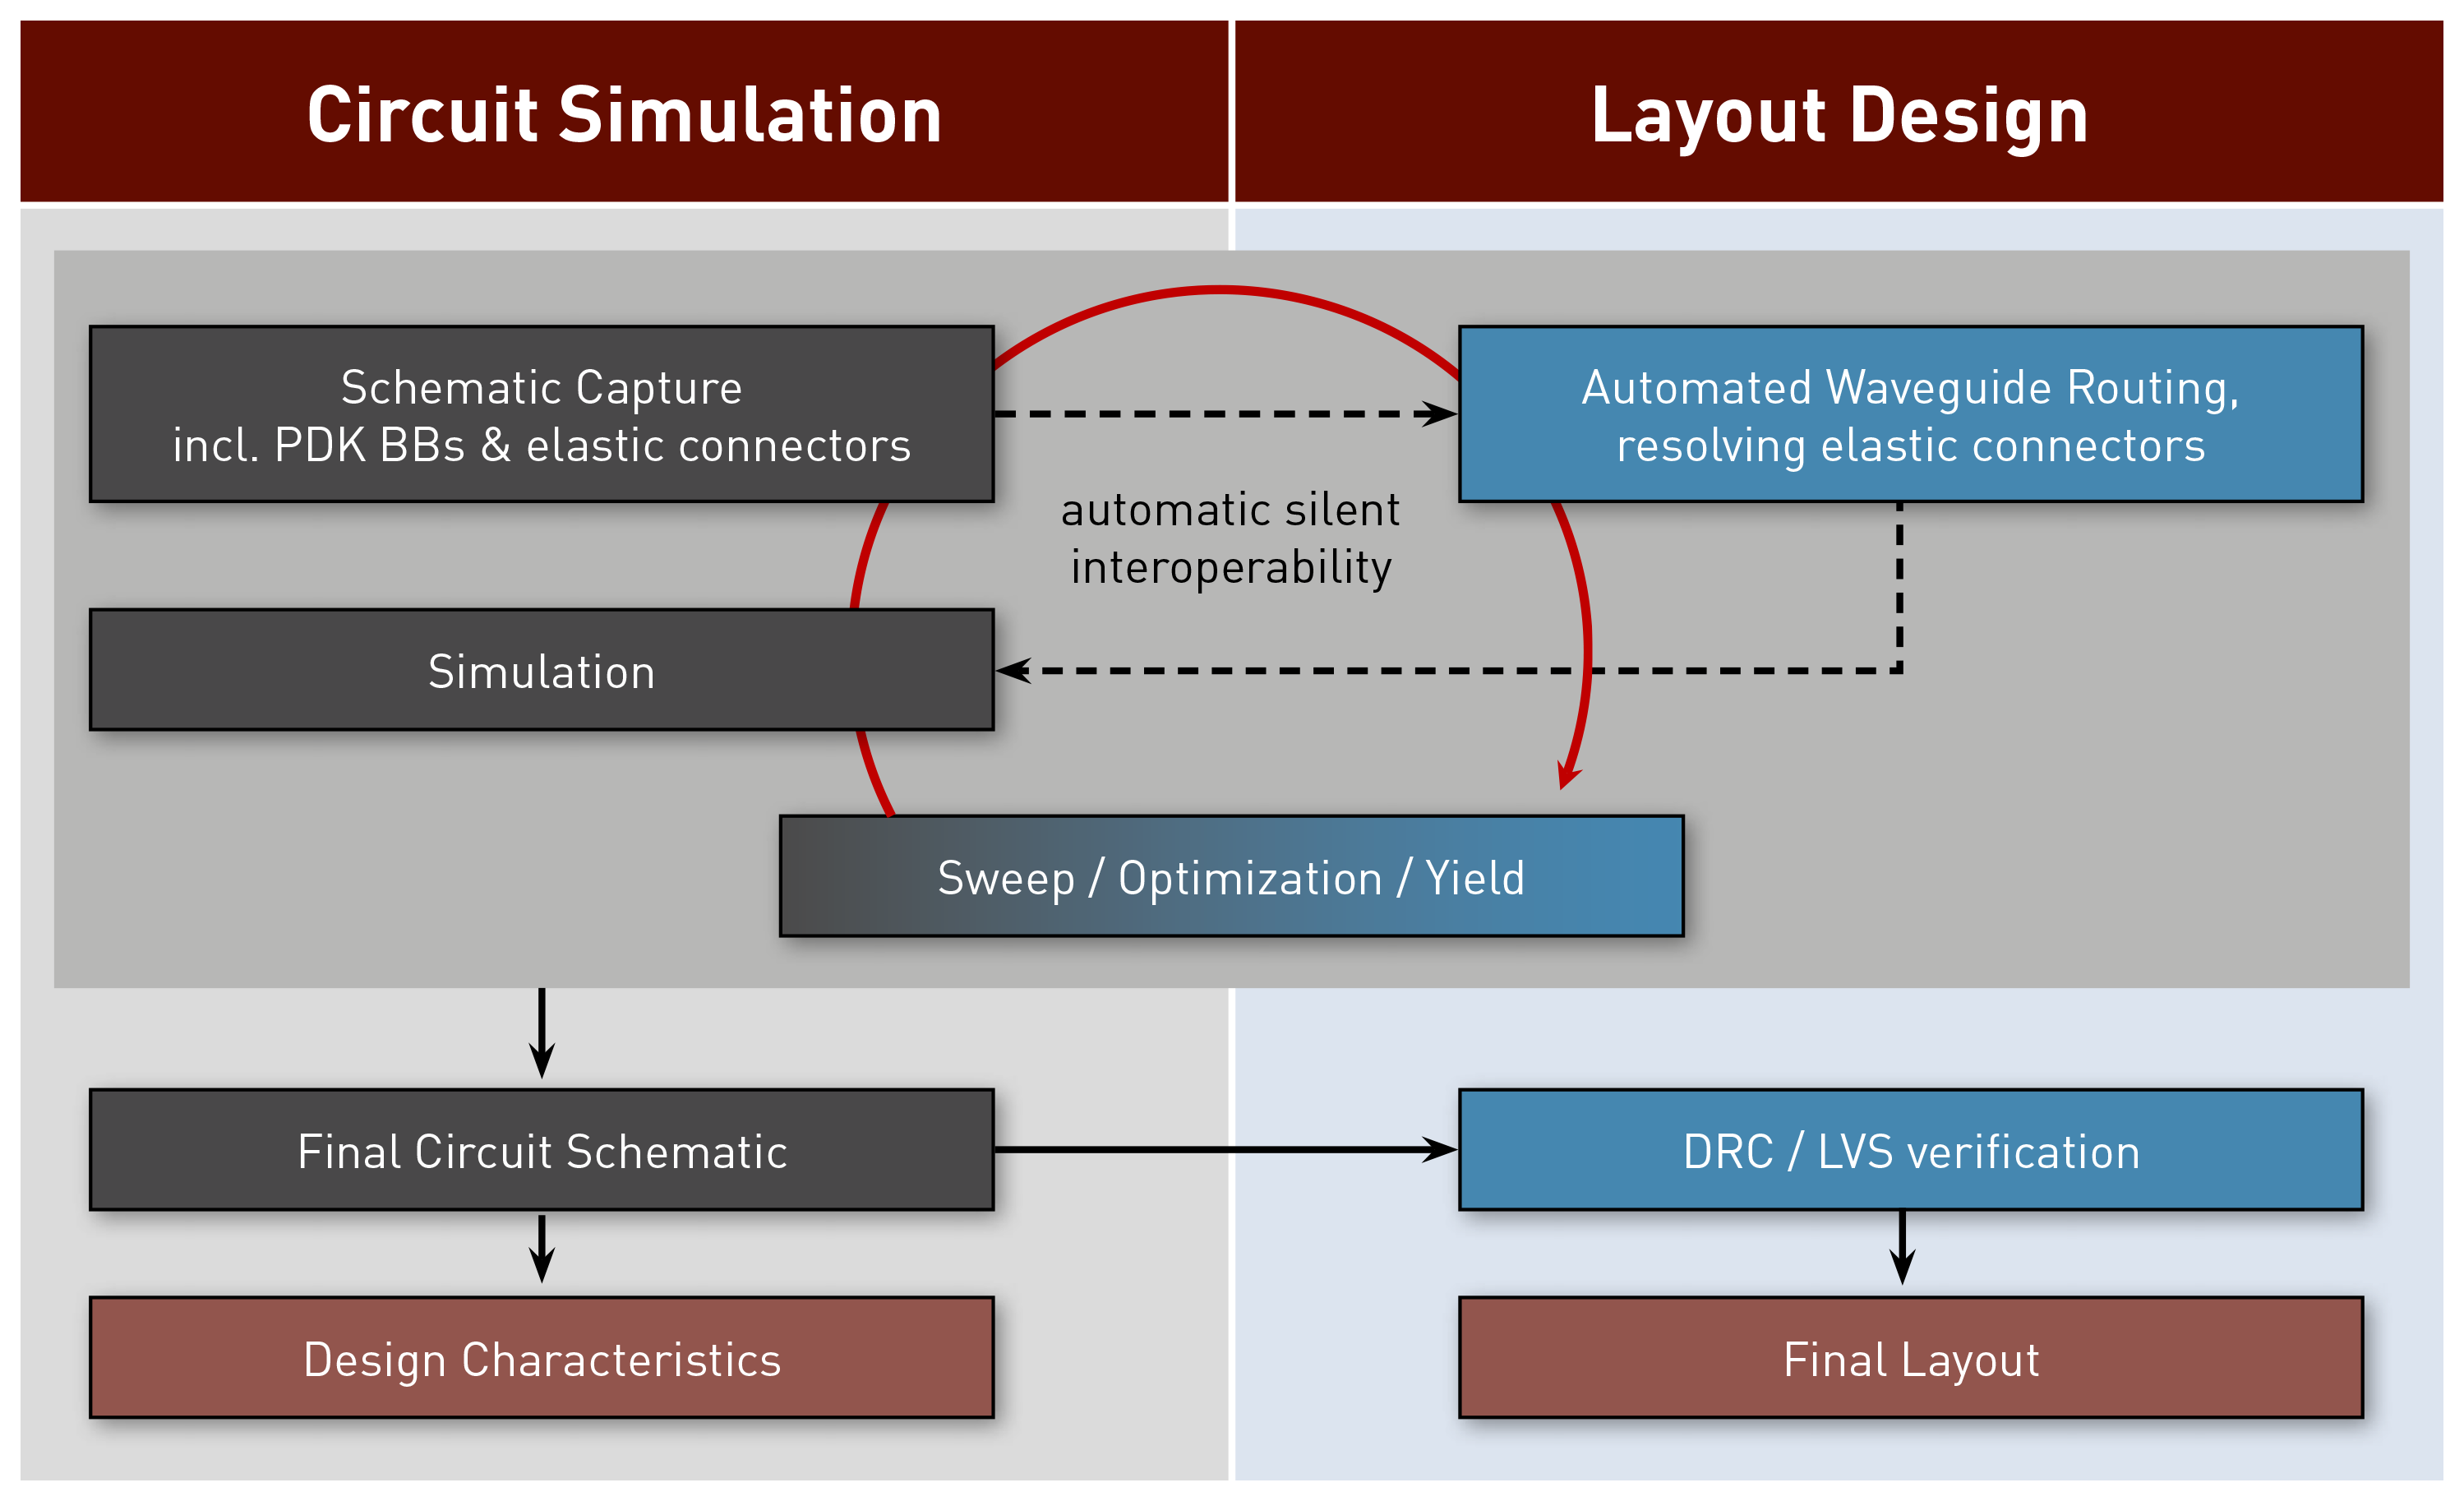 Sketch of layout-aware schematic-driven design methodology